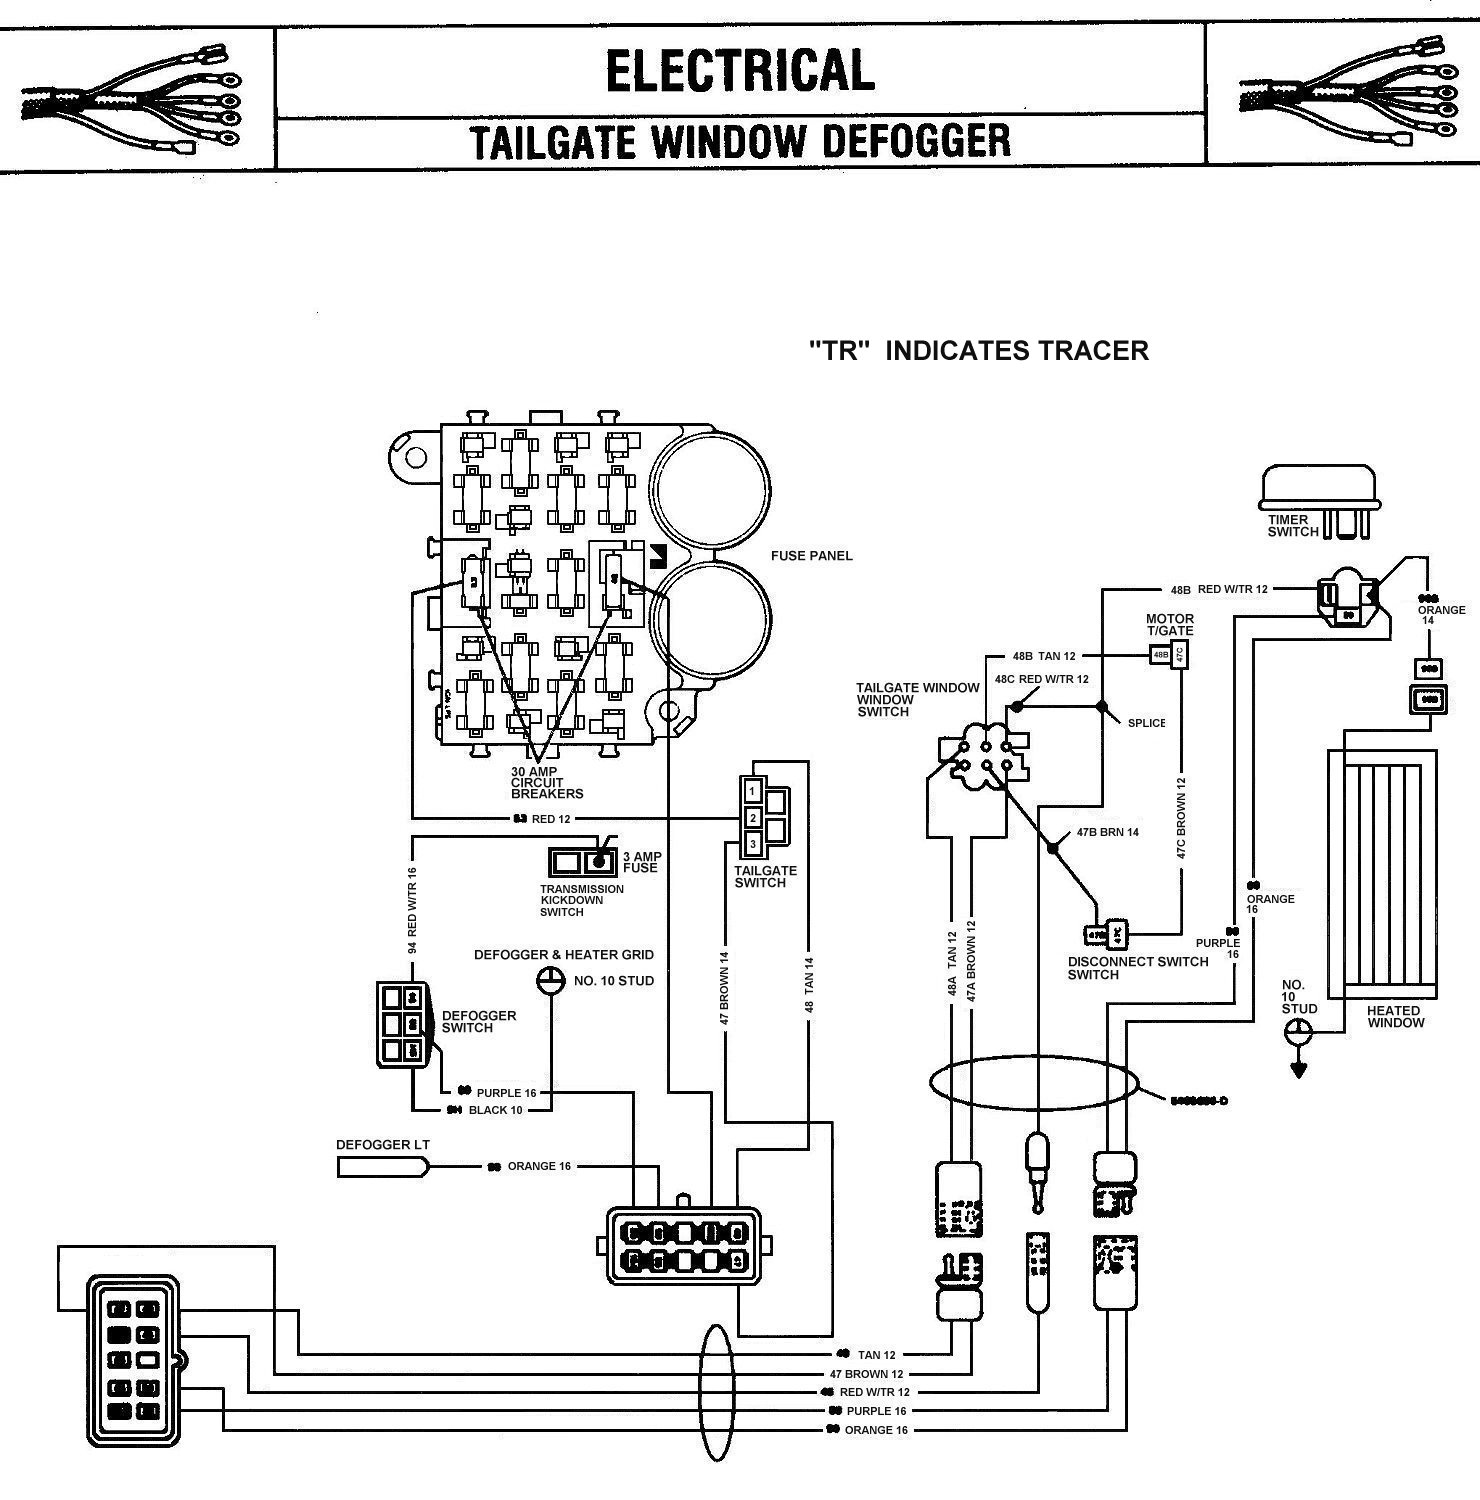 hight resolution of rear window 2000 vw jetta wiring diagram wiring library rh 59 codingcommunity de 2001 jetta wiring diagram 2003 jetta wiring diagram